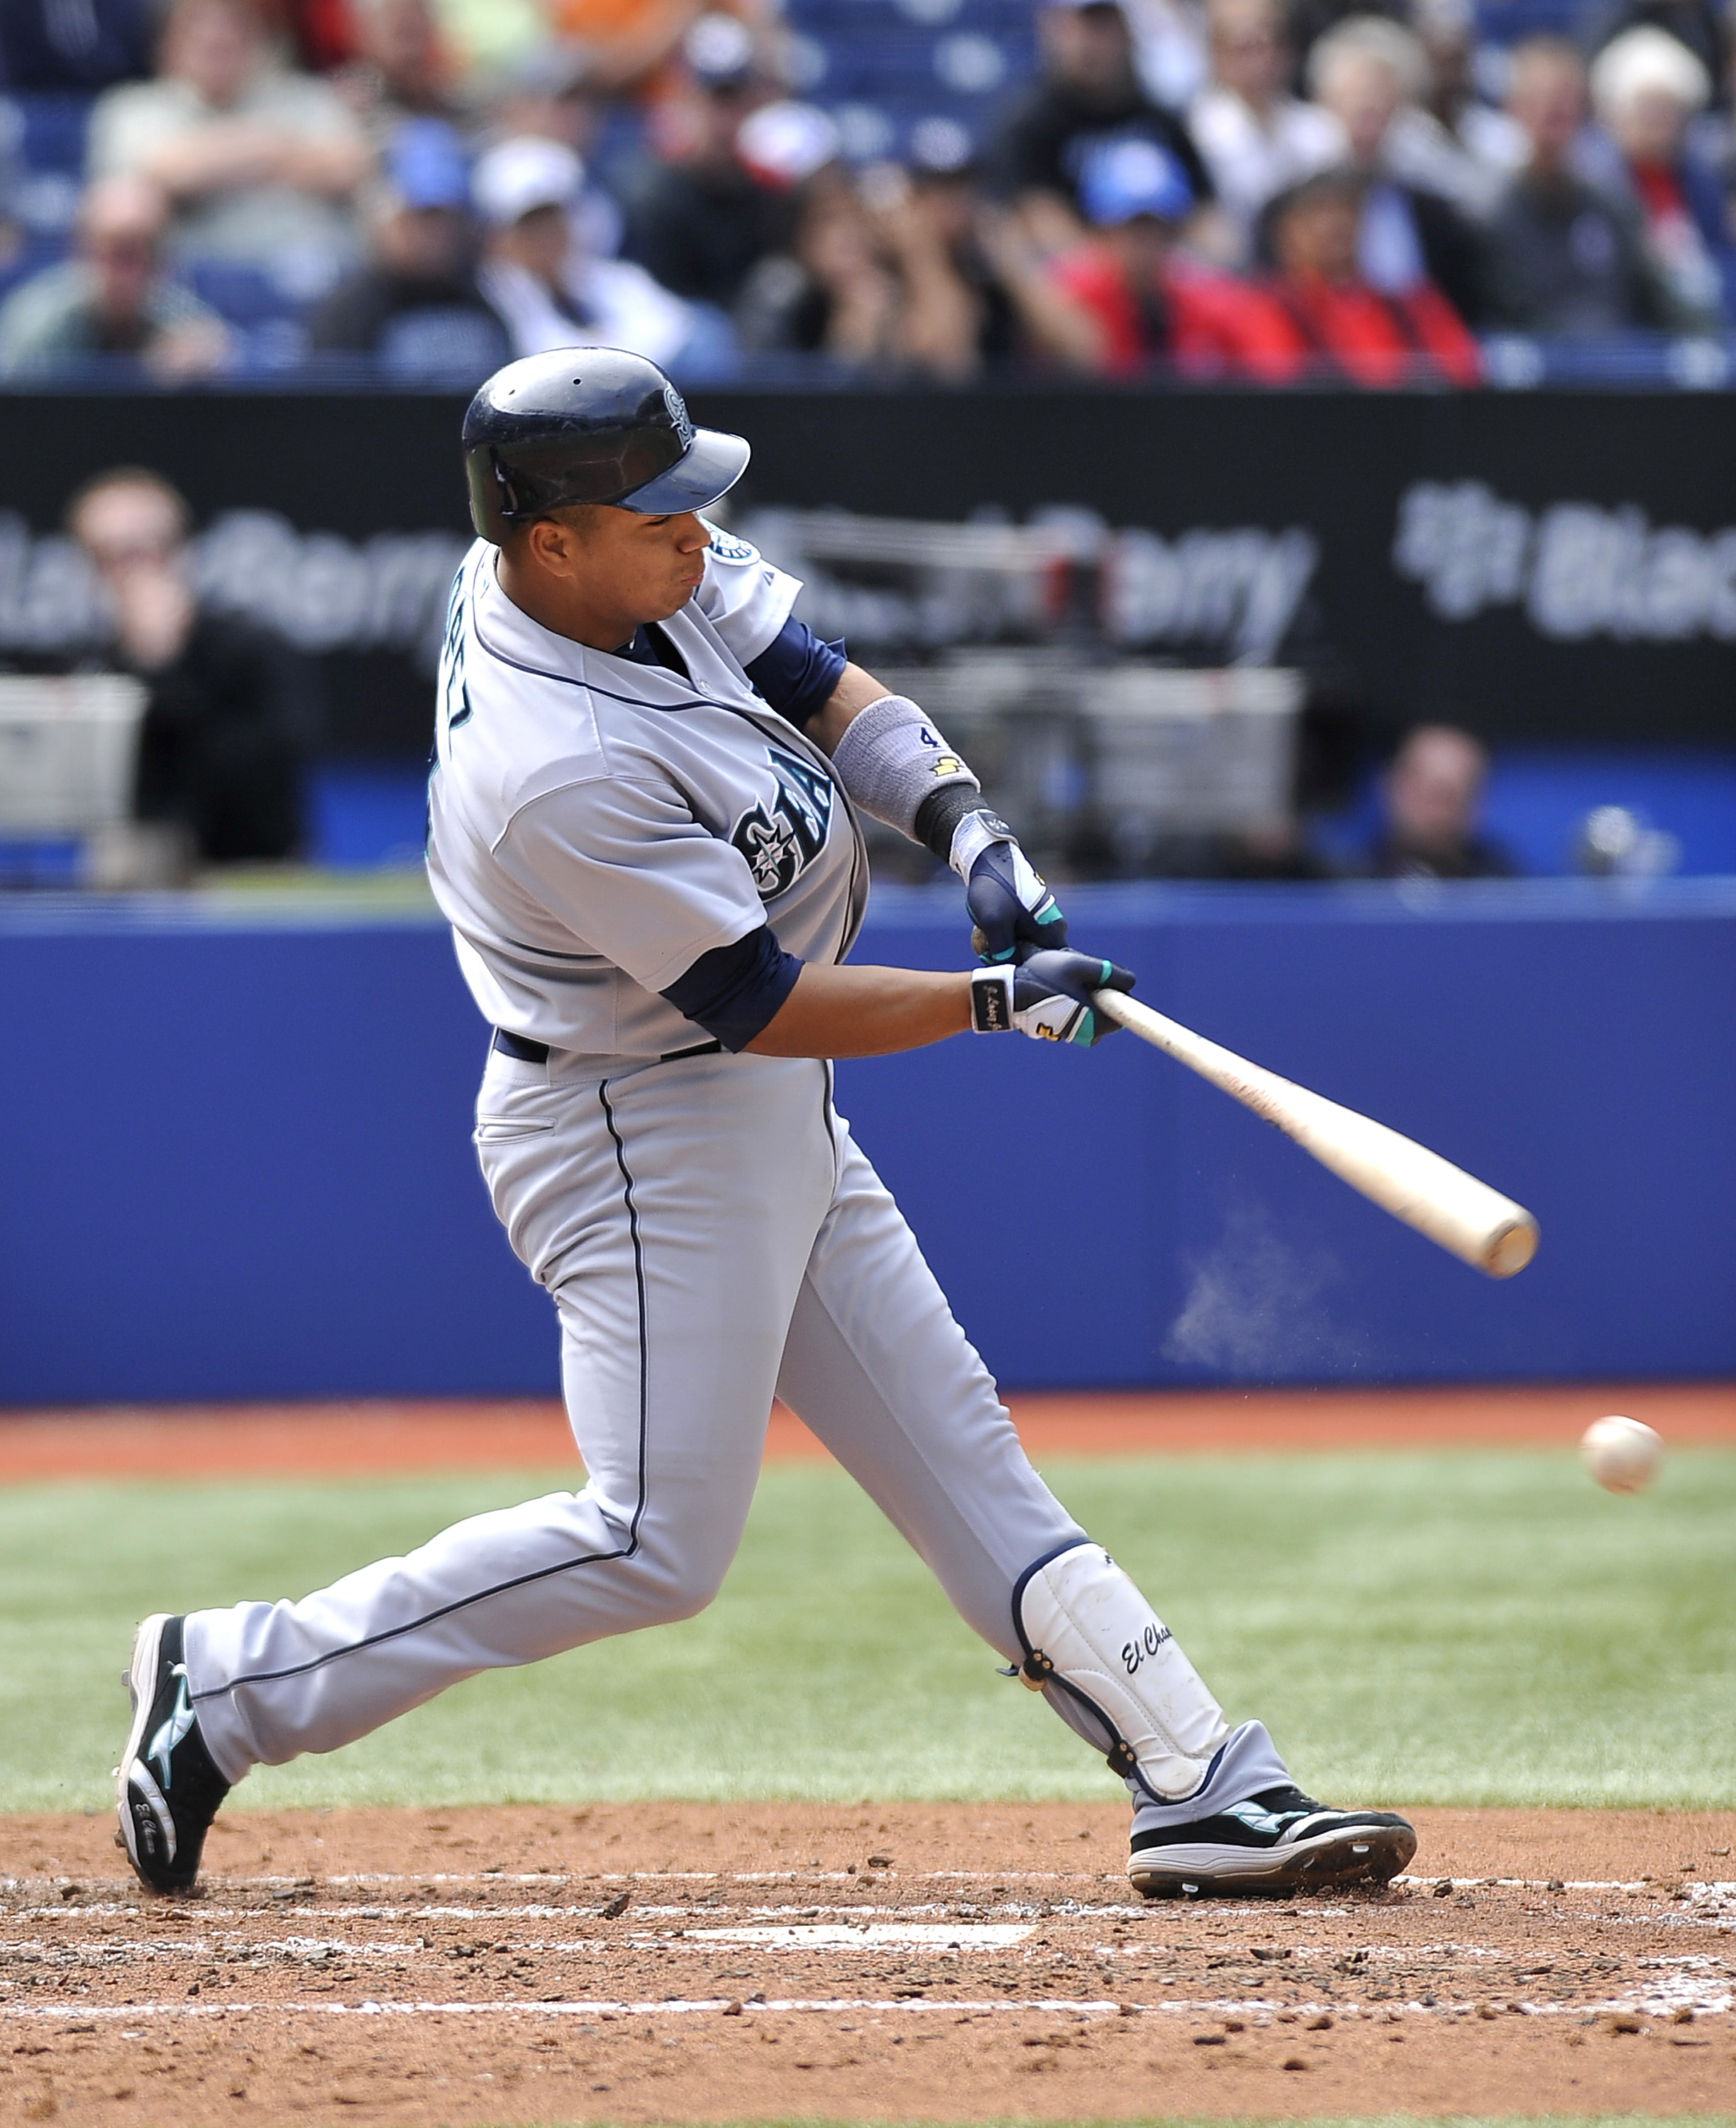 TORONTO - SEPTEMBER 23:   Jose Lopez #4 of the Seattle Mariners bats against the Toronto Blue Jays during the game on September 23, 2010 at Rogers Centre in Toronto, Ontario, Canada. The Blue Jays defeated the Mariners 1-0. (Photo by Brad White/Getty Imag